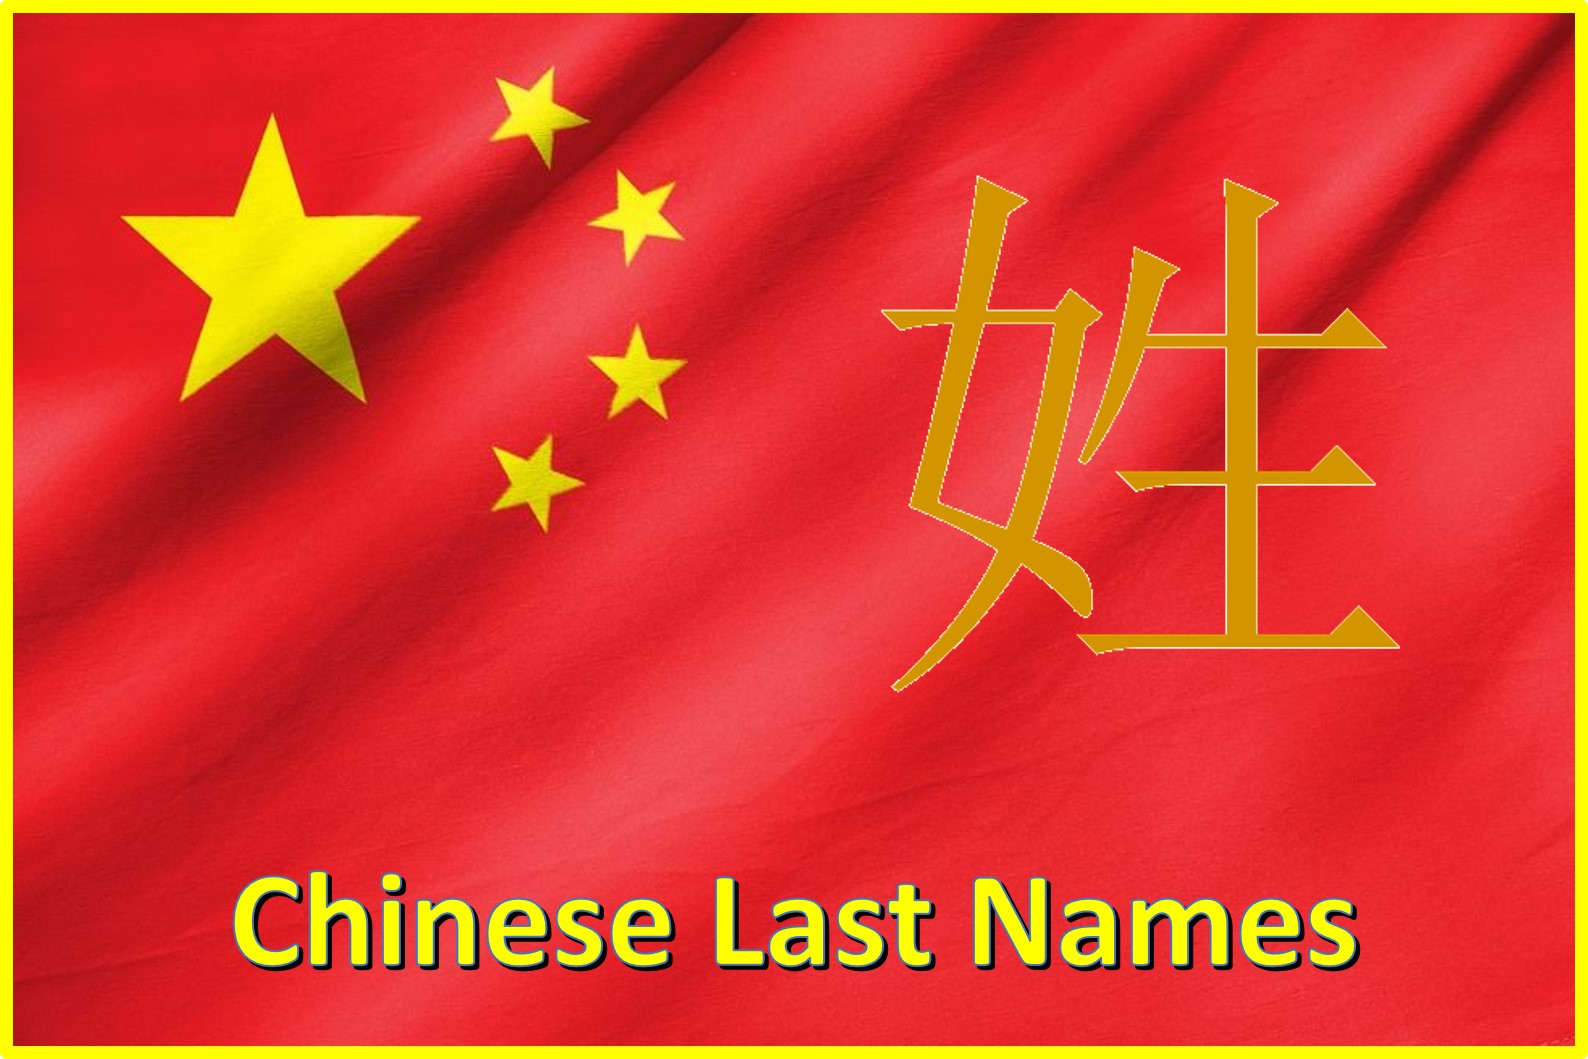 Chinese Last Names